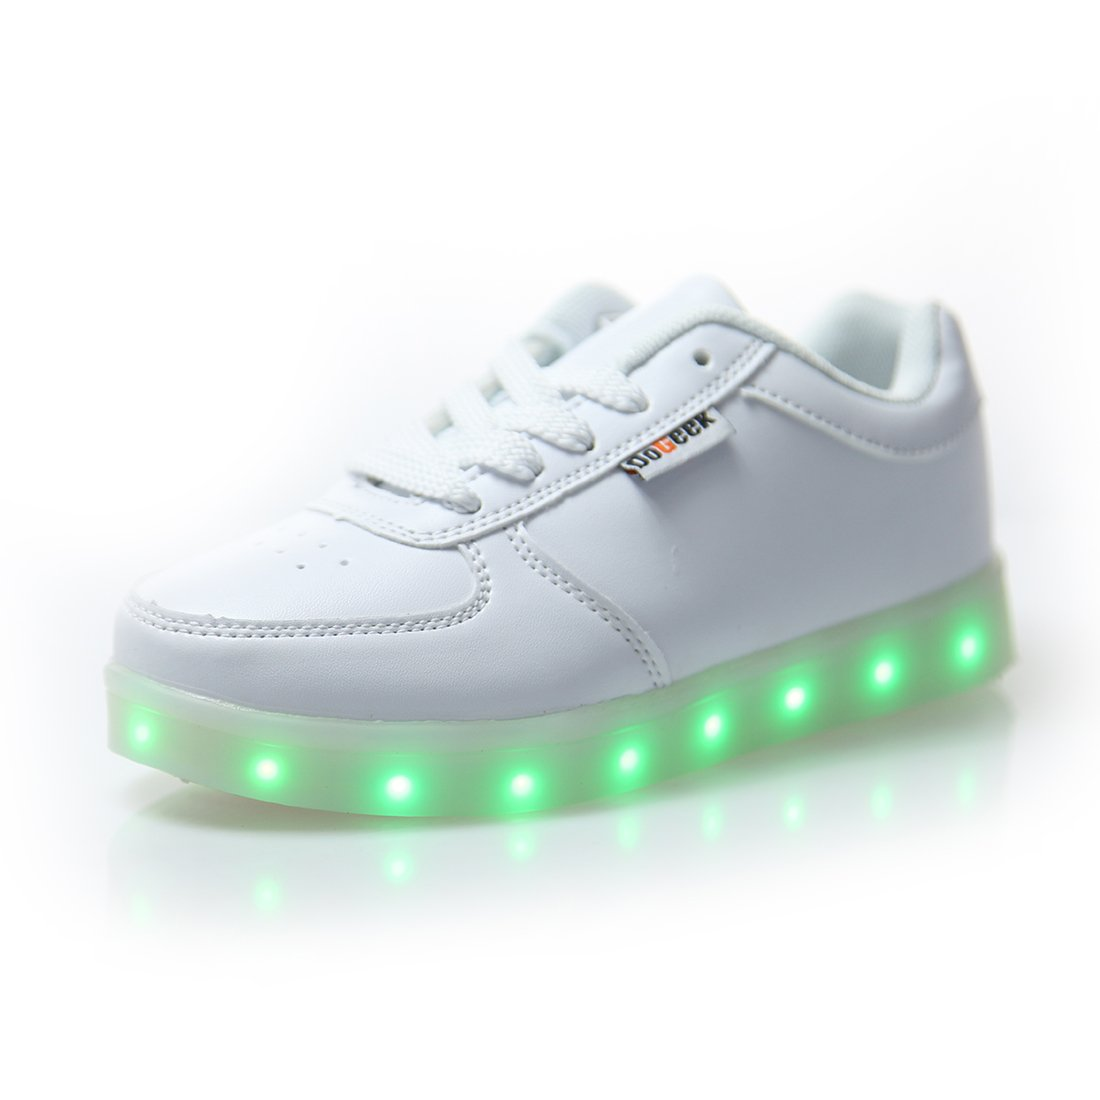 DoGeek Basket LED Lumineuse Chaussures -Garçon Fille USB Rechargeable-7 Lumineuse Colorful Chaussures Baskets Mode B&W-Male